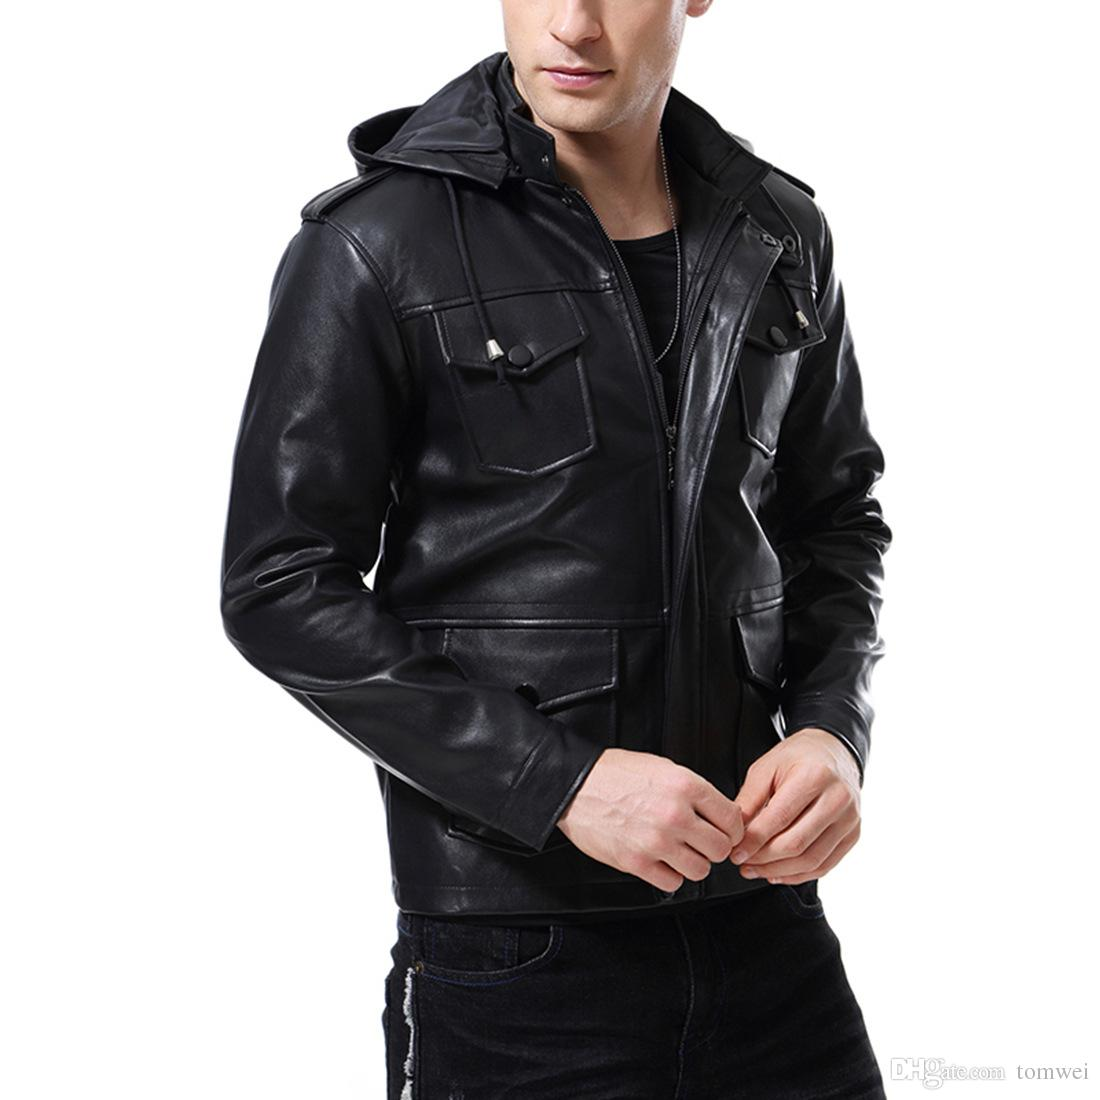 2019 Motorcyle Biker Jackets Hoodies Leather Clothing For Men Autumn